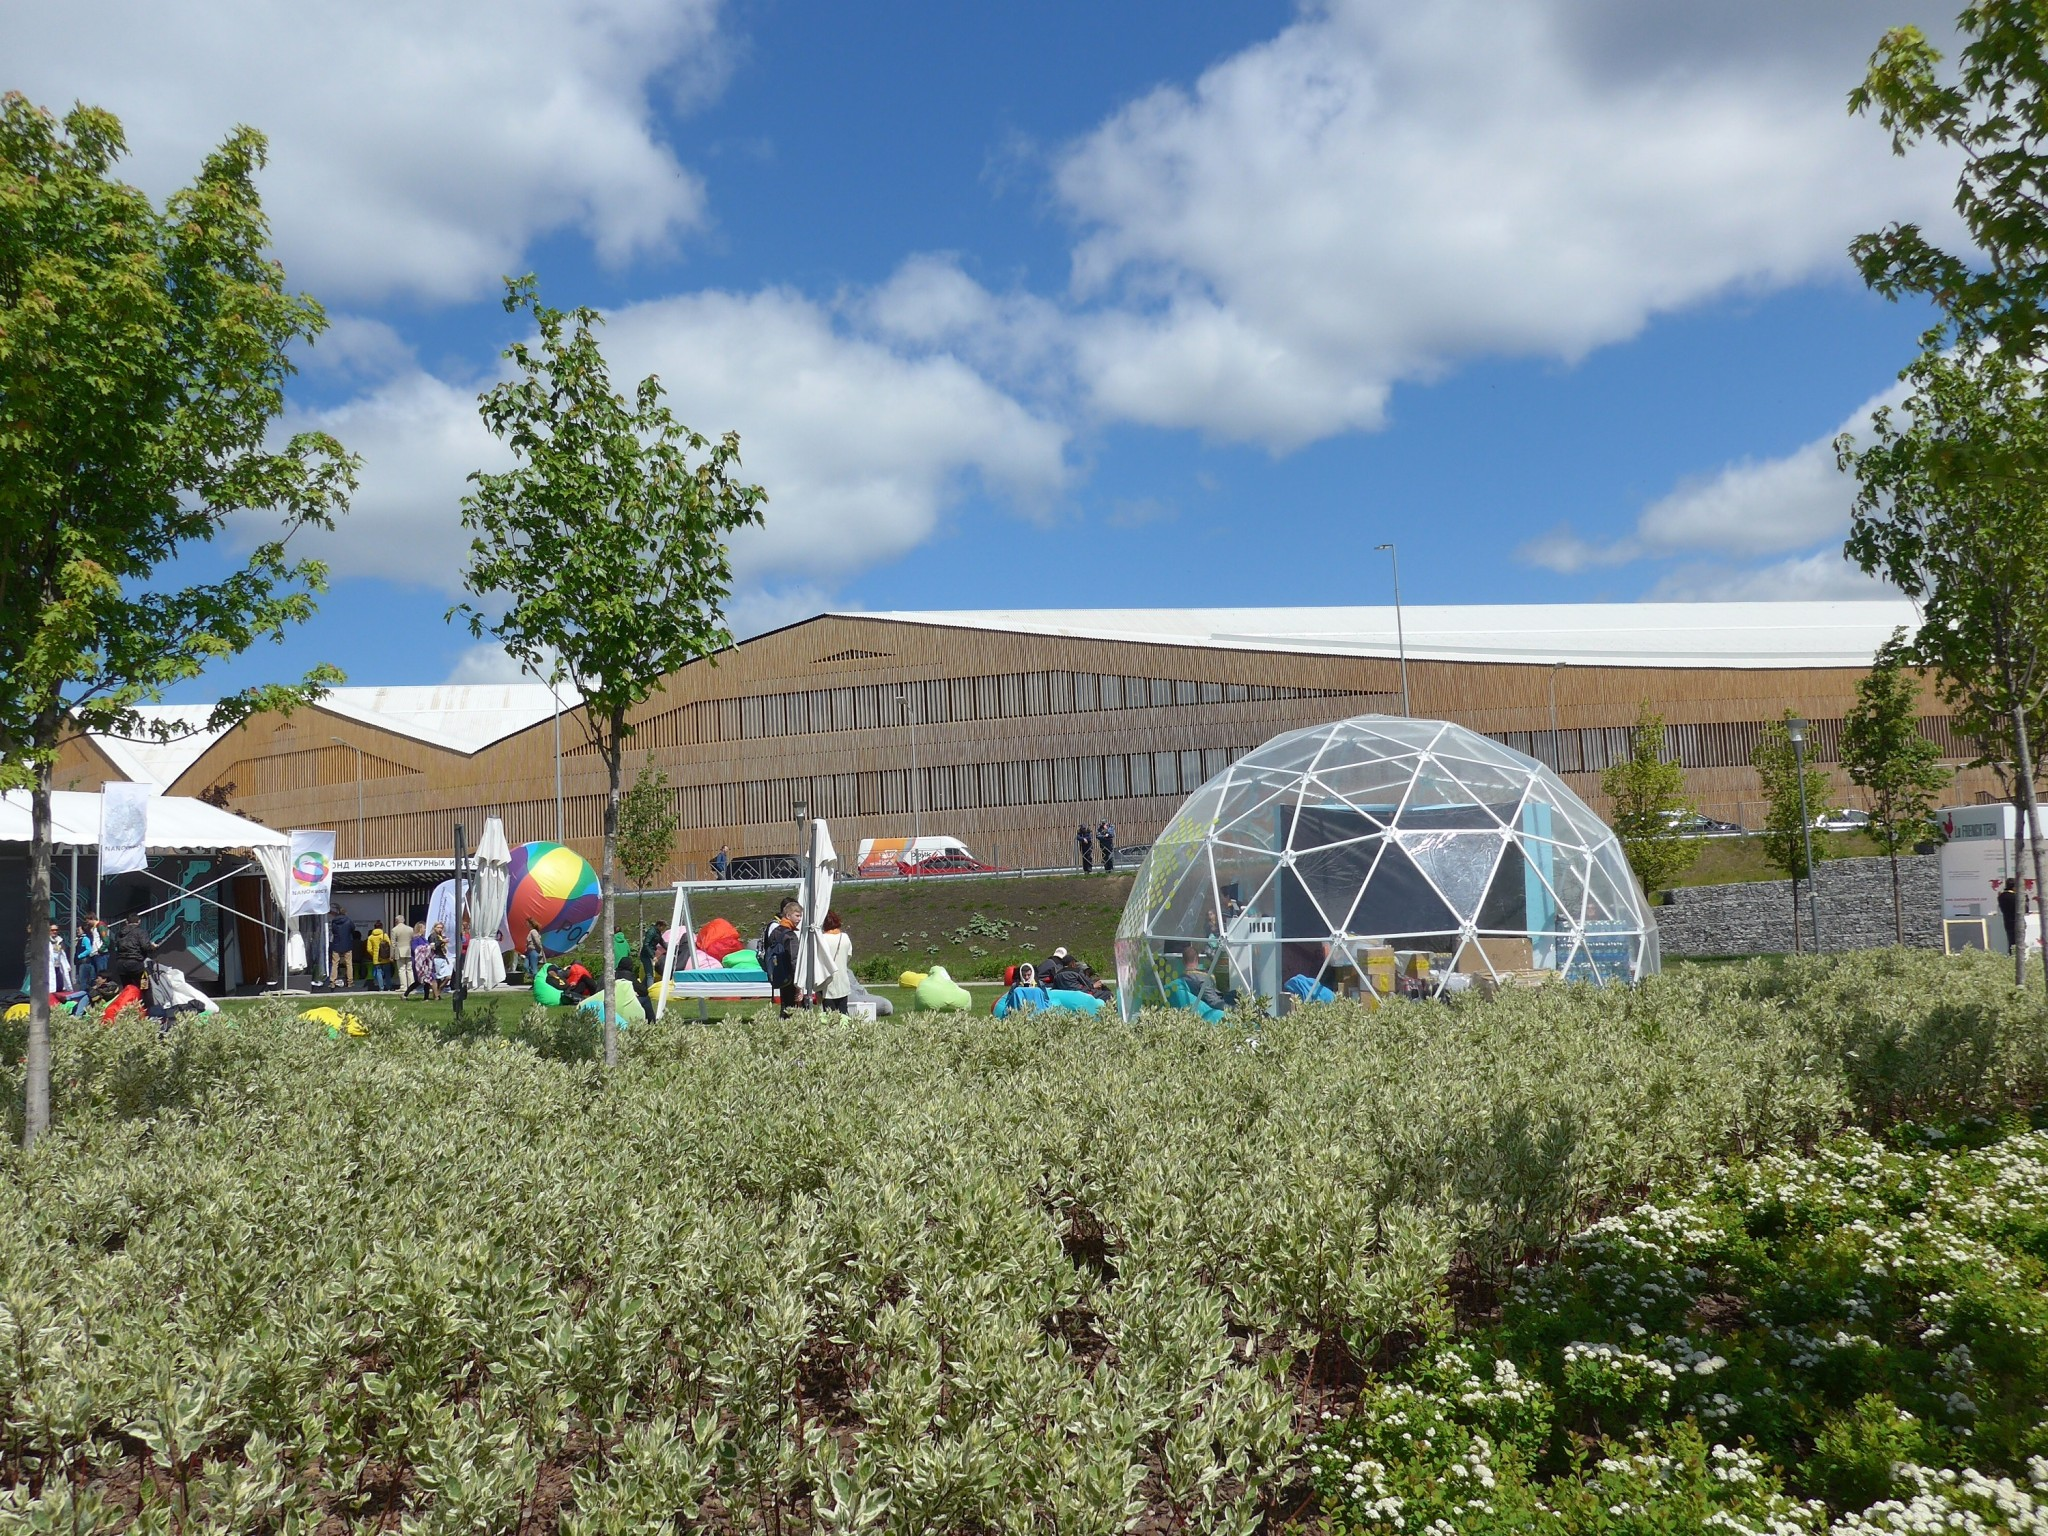 The new Skoltech campus was omnipresent during the two-day Skolkovo Startup Village event. Photo: Skoltech.